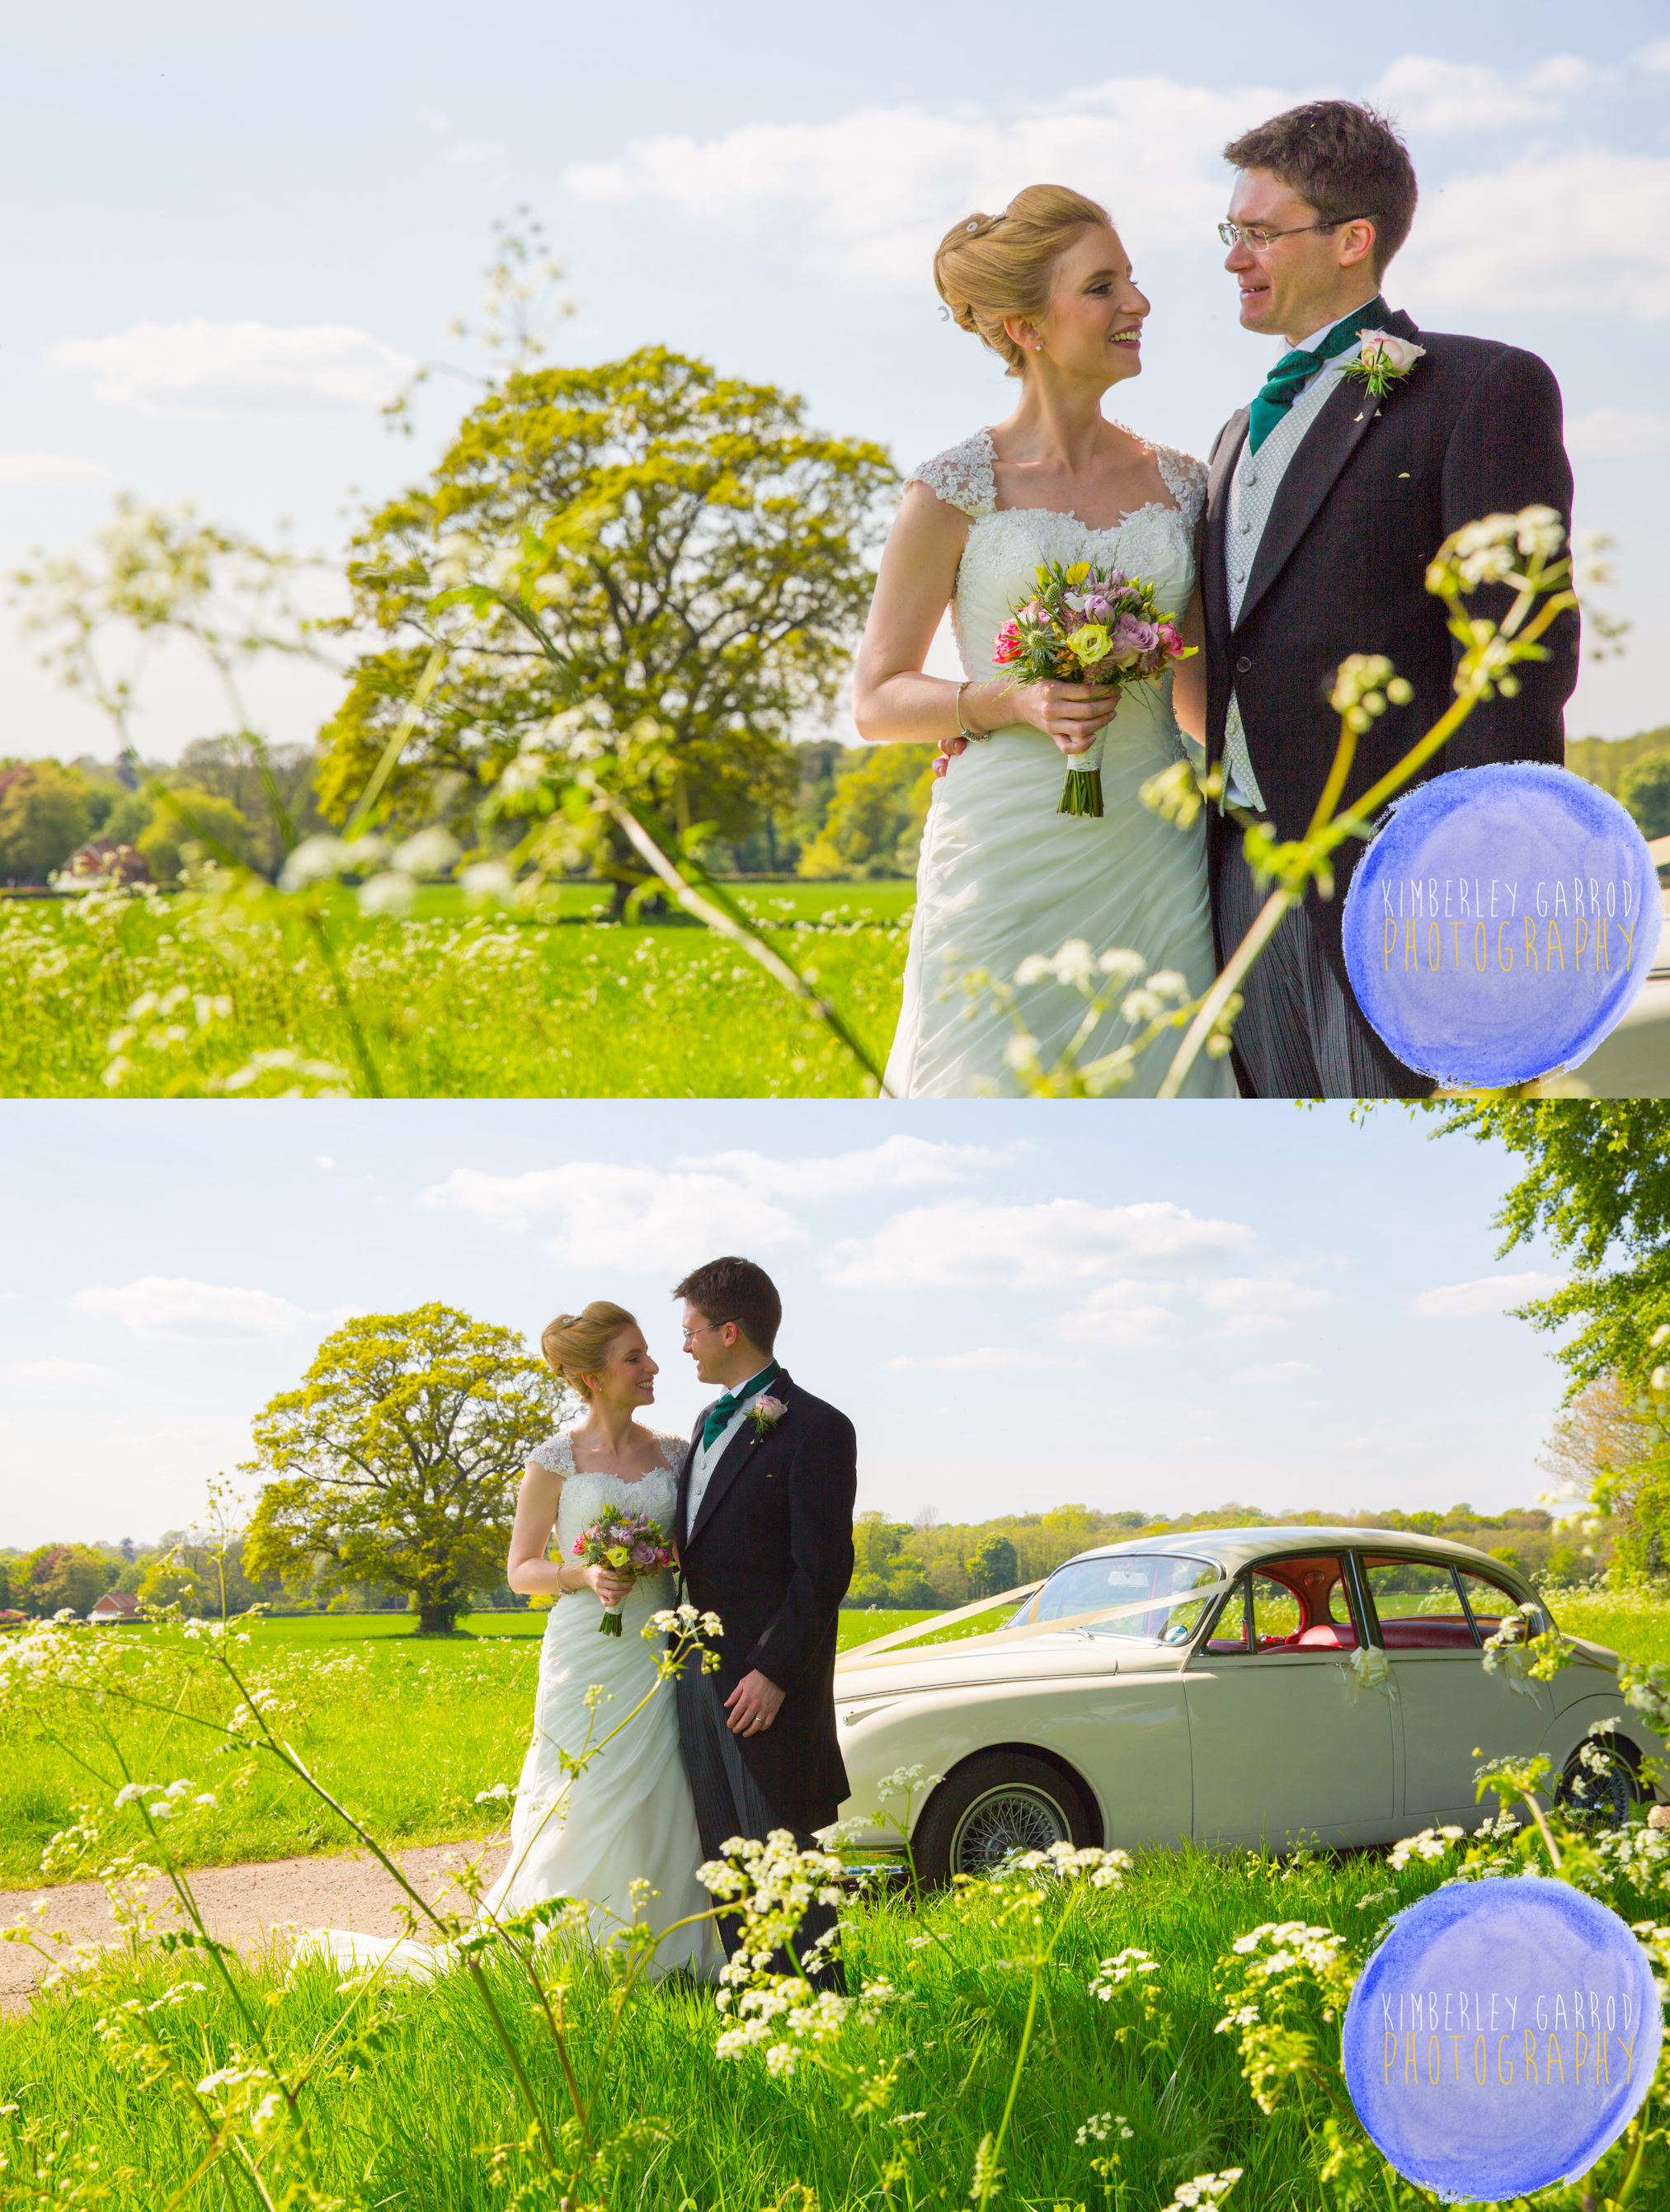 Wedding Photographer Kimberley Garrod Southampton Hampshire